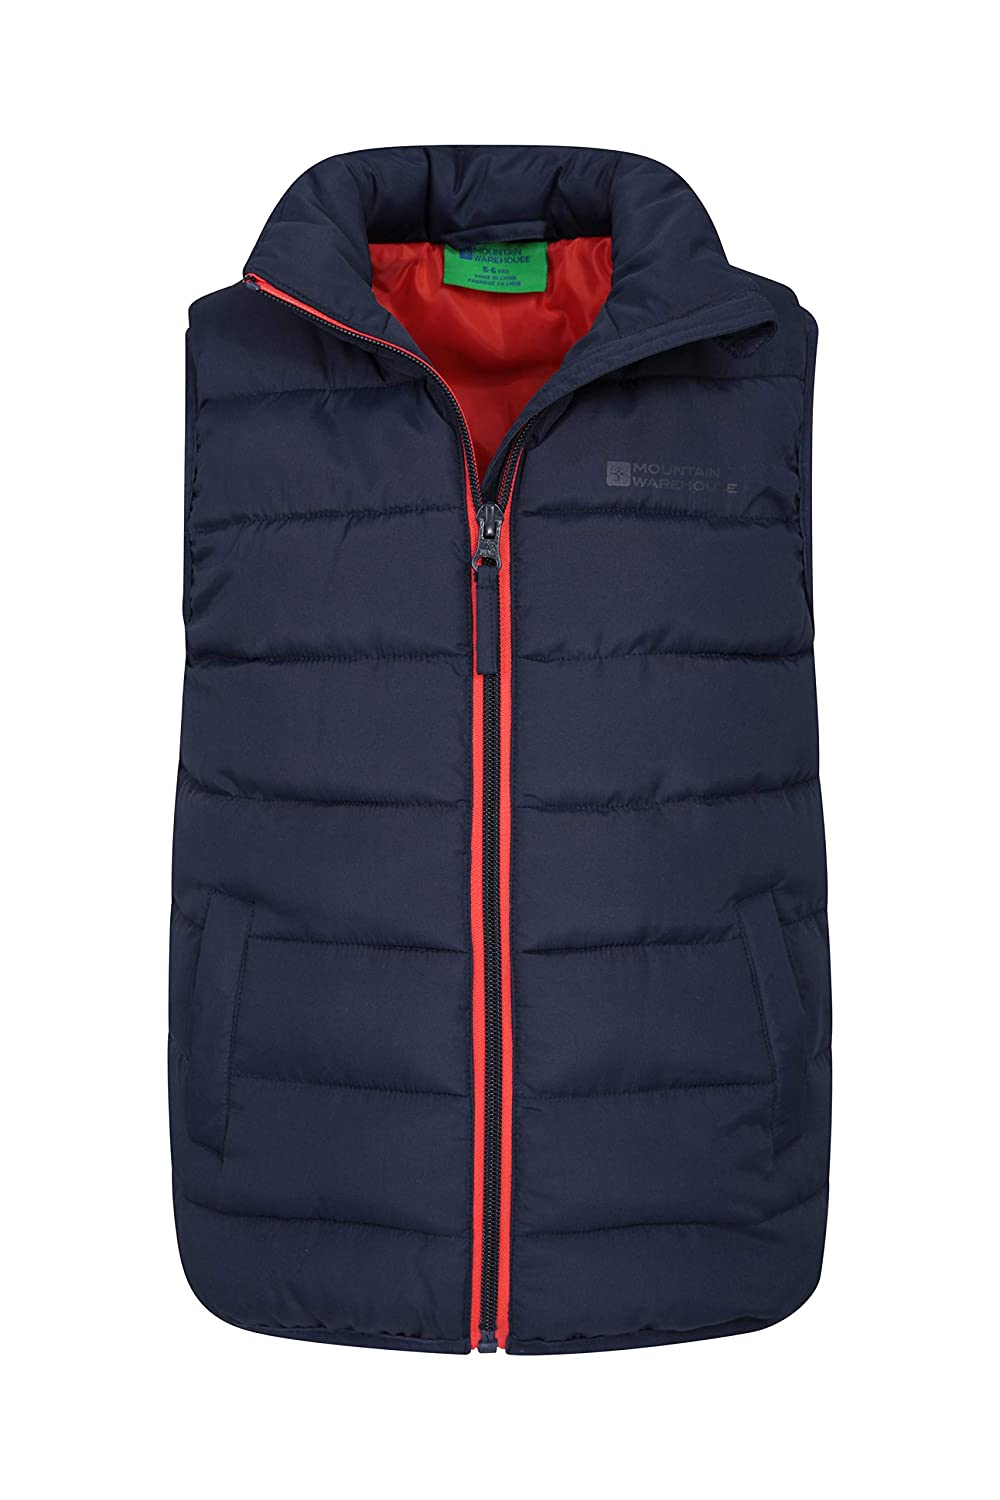 86668f39659 Mountain Warehouse Rocko Kids Padded Gilet - Water Resistant Rain Coat,  Microfibre Padded Vest, Two Front Pockets Childrens Jacket - Ideal Body  Warmer ...